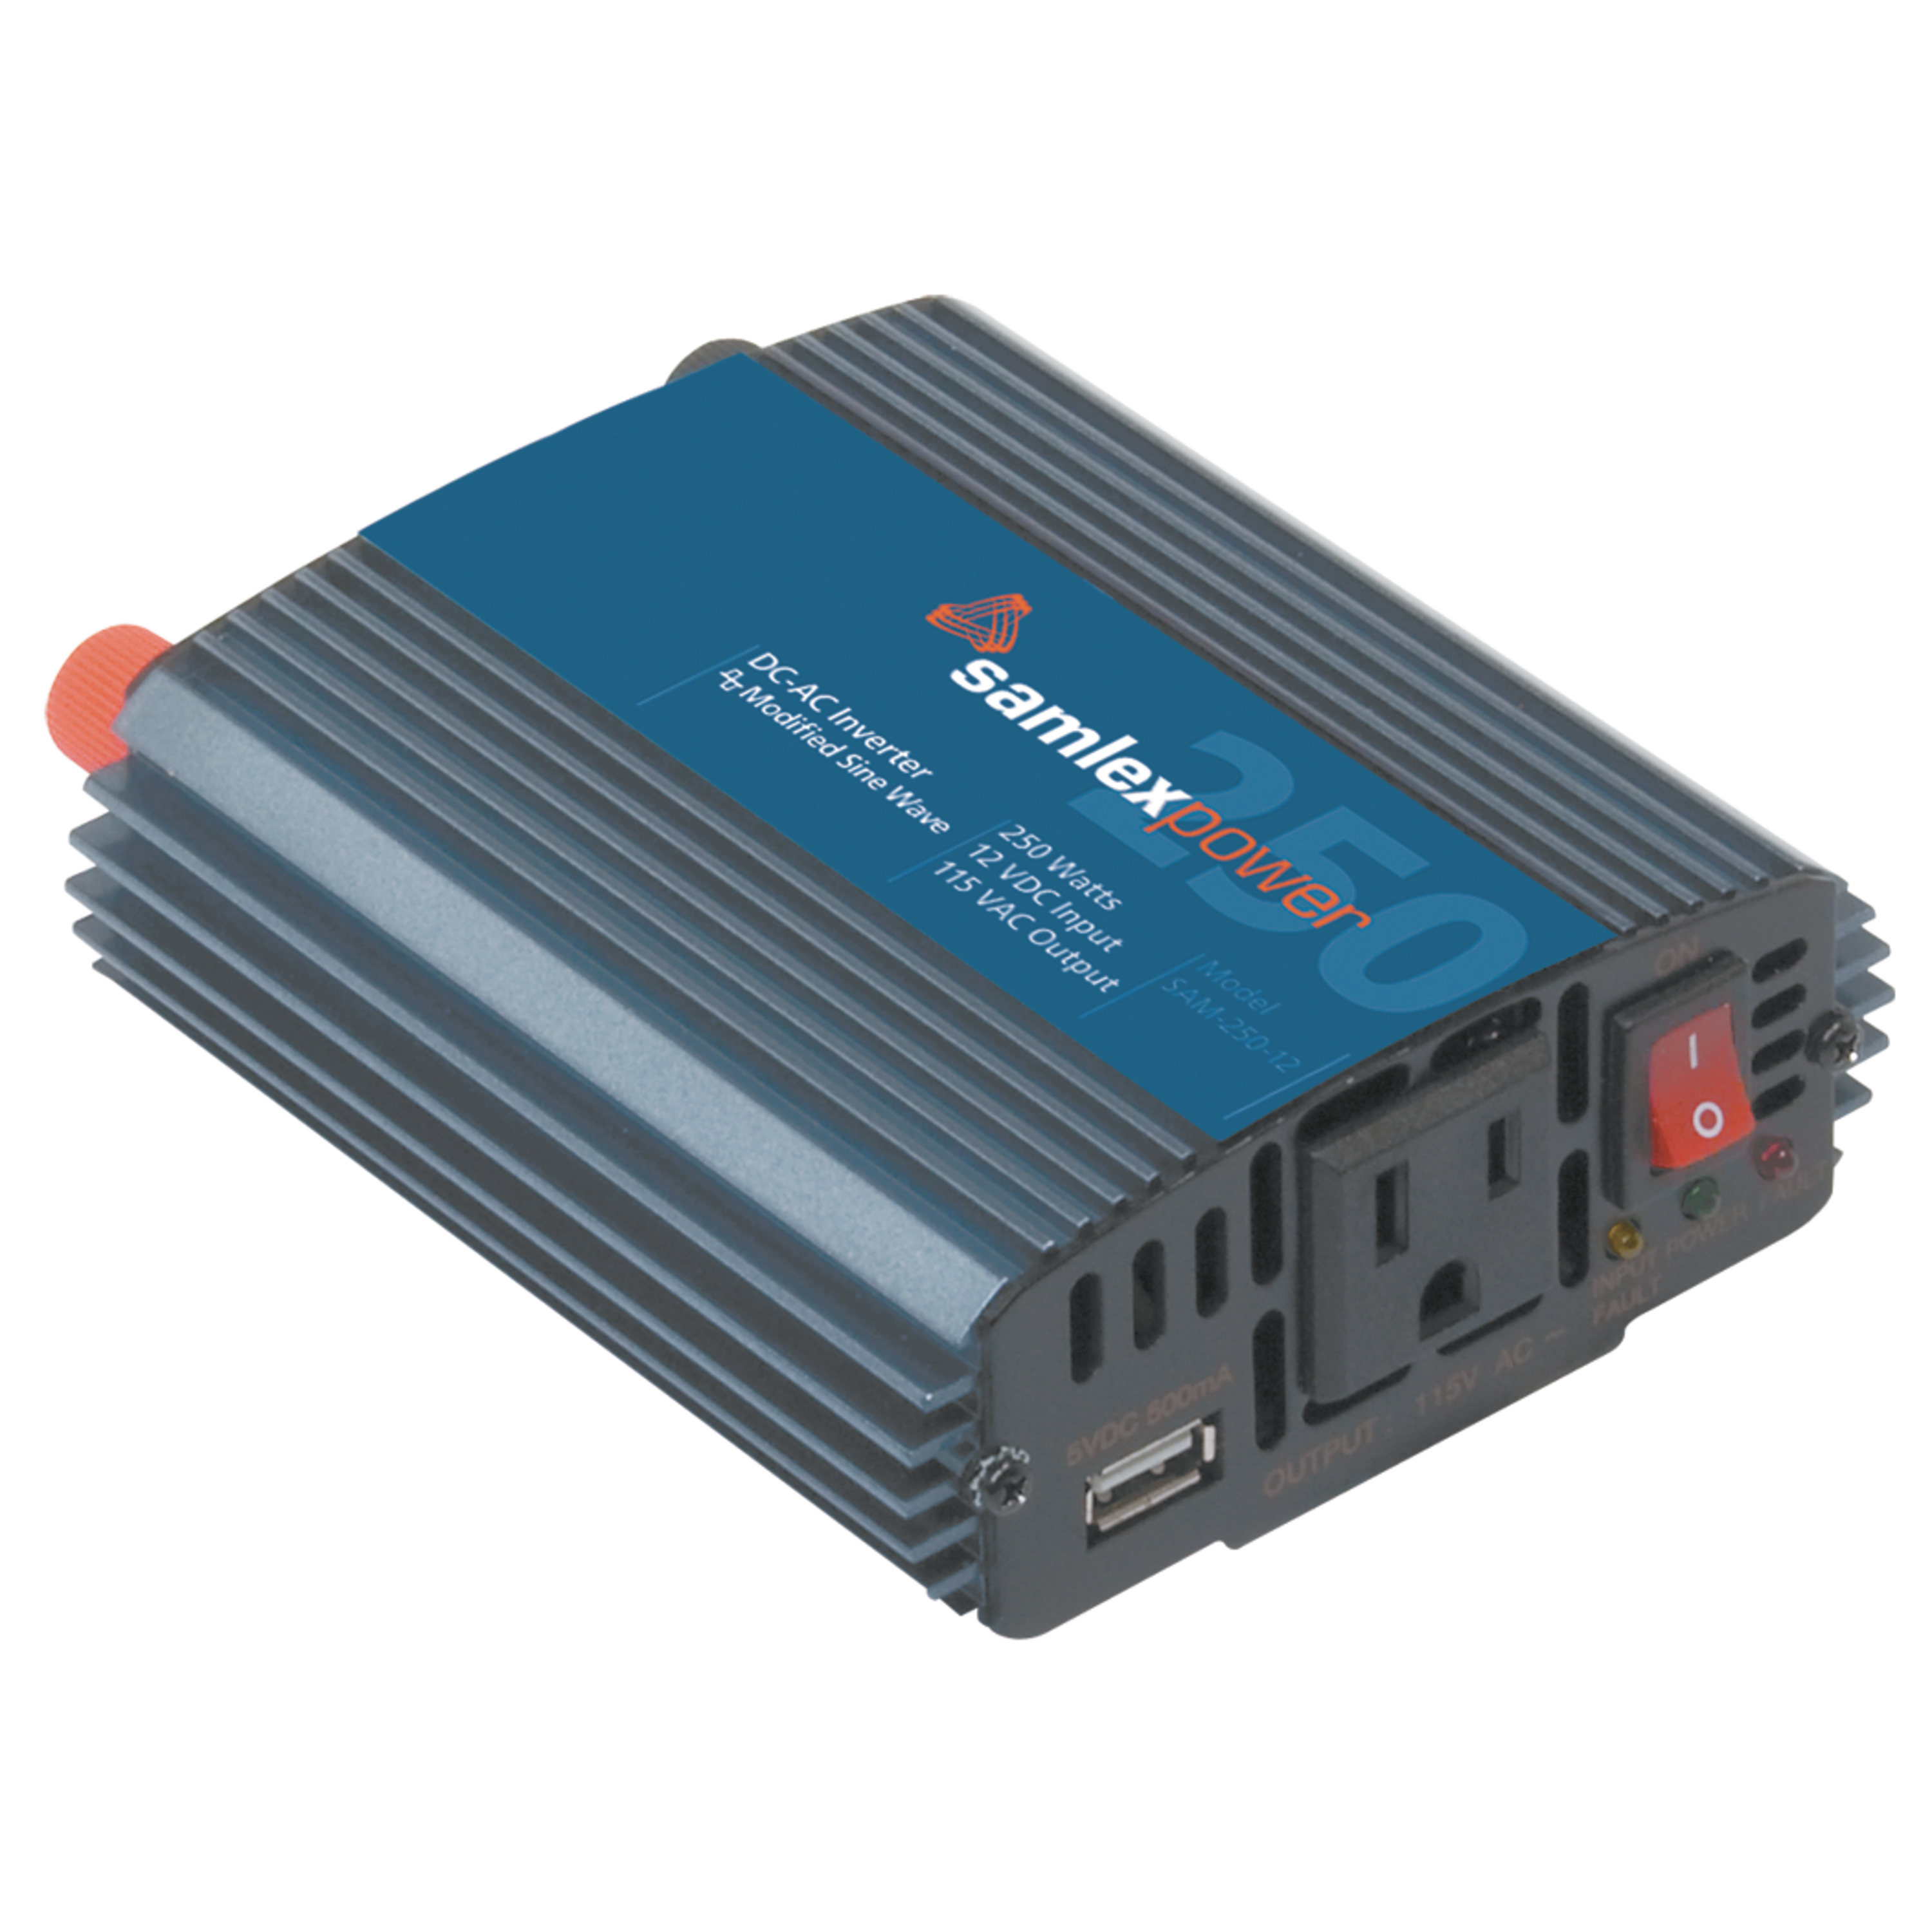 SamlexPower SAM-800-12 Sam Series 800W Modified Sine Wave Inverter with USB Charge Port